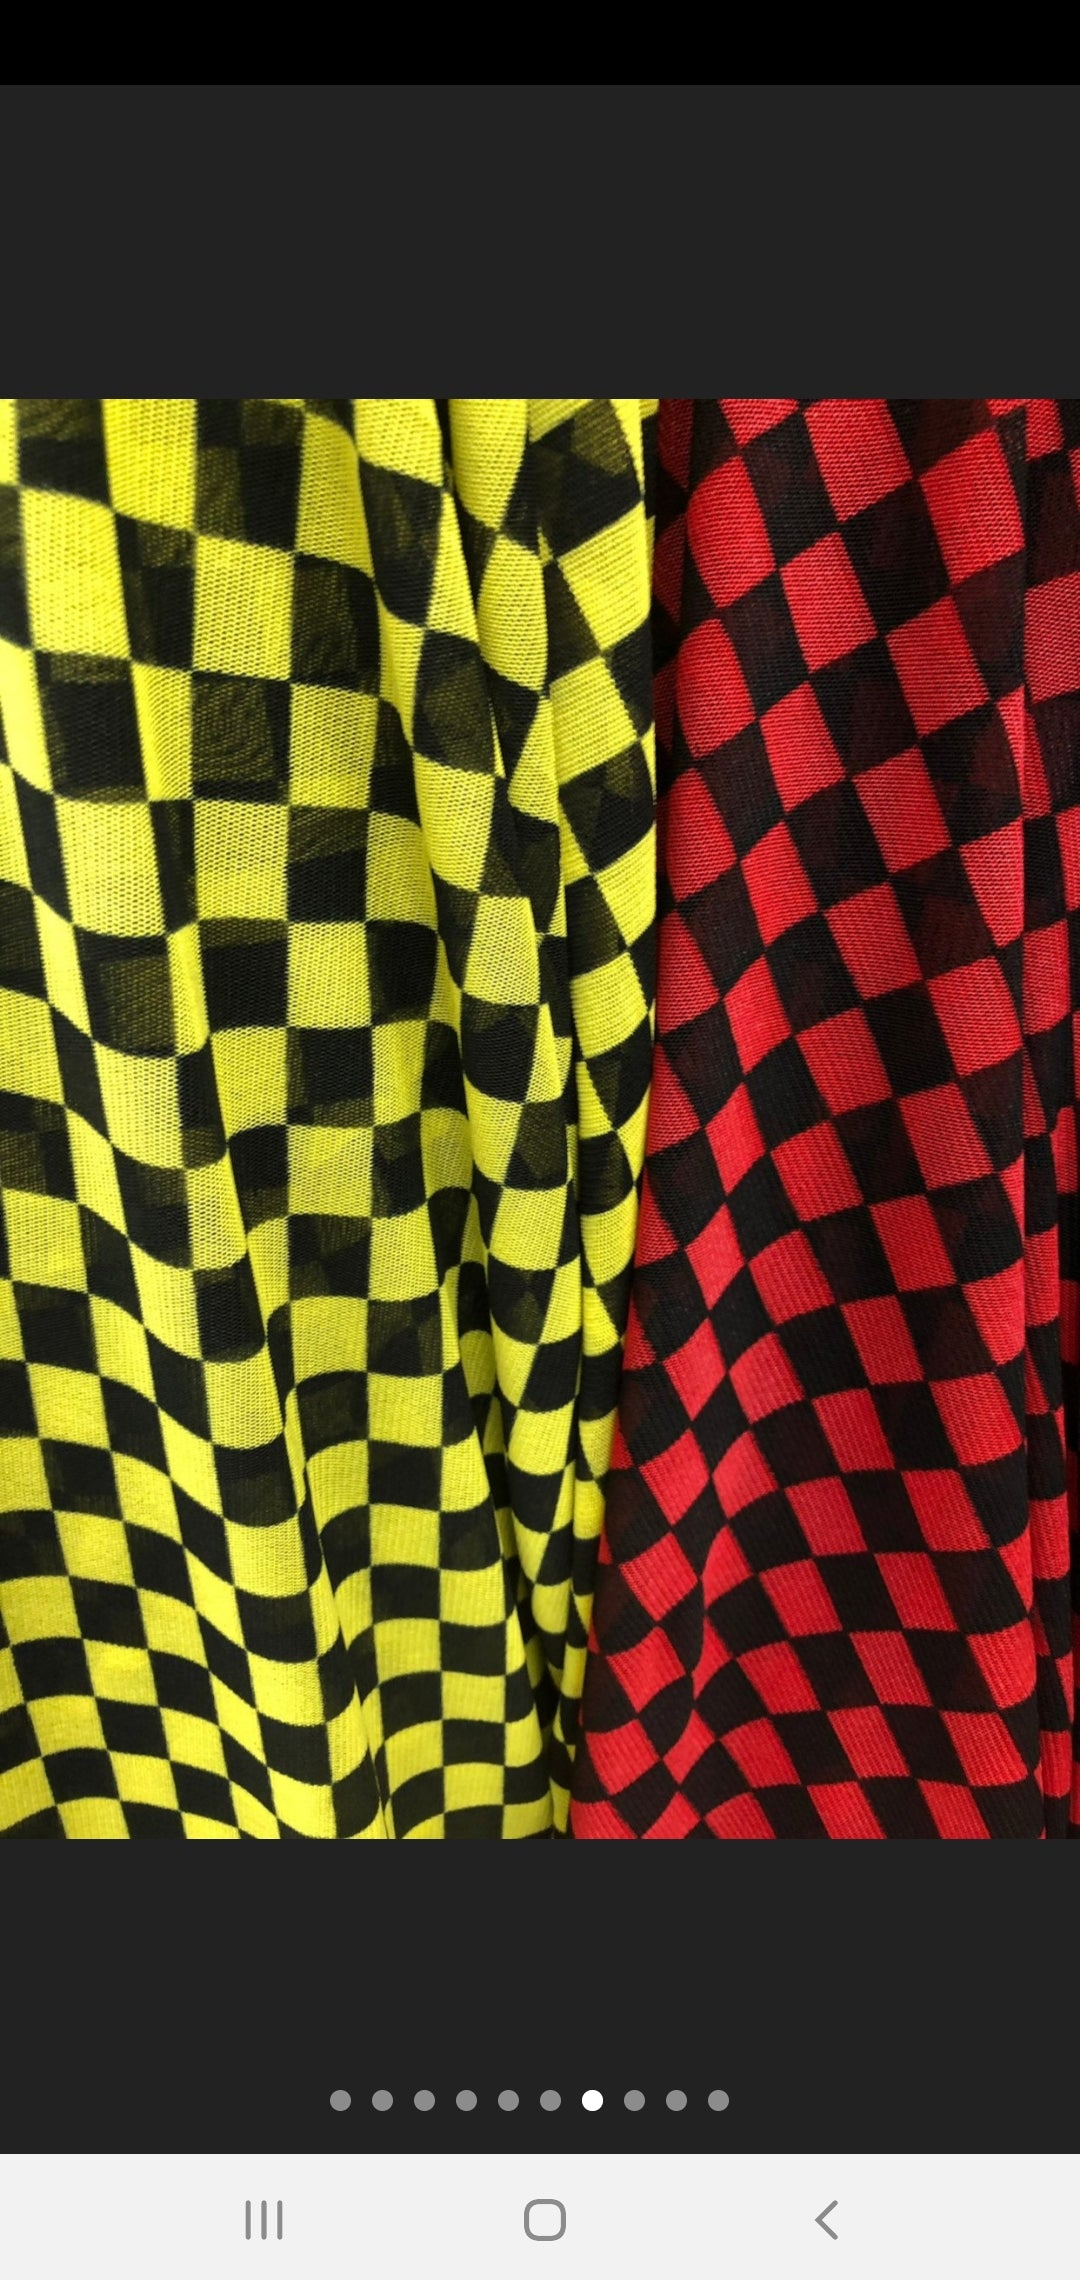 Black and Red Checkered Mesh Tee